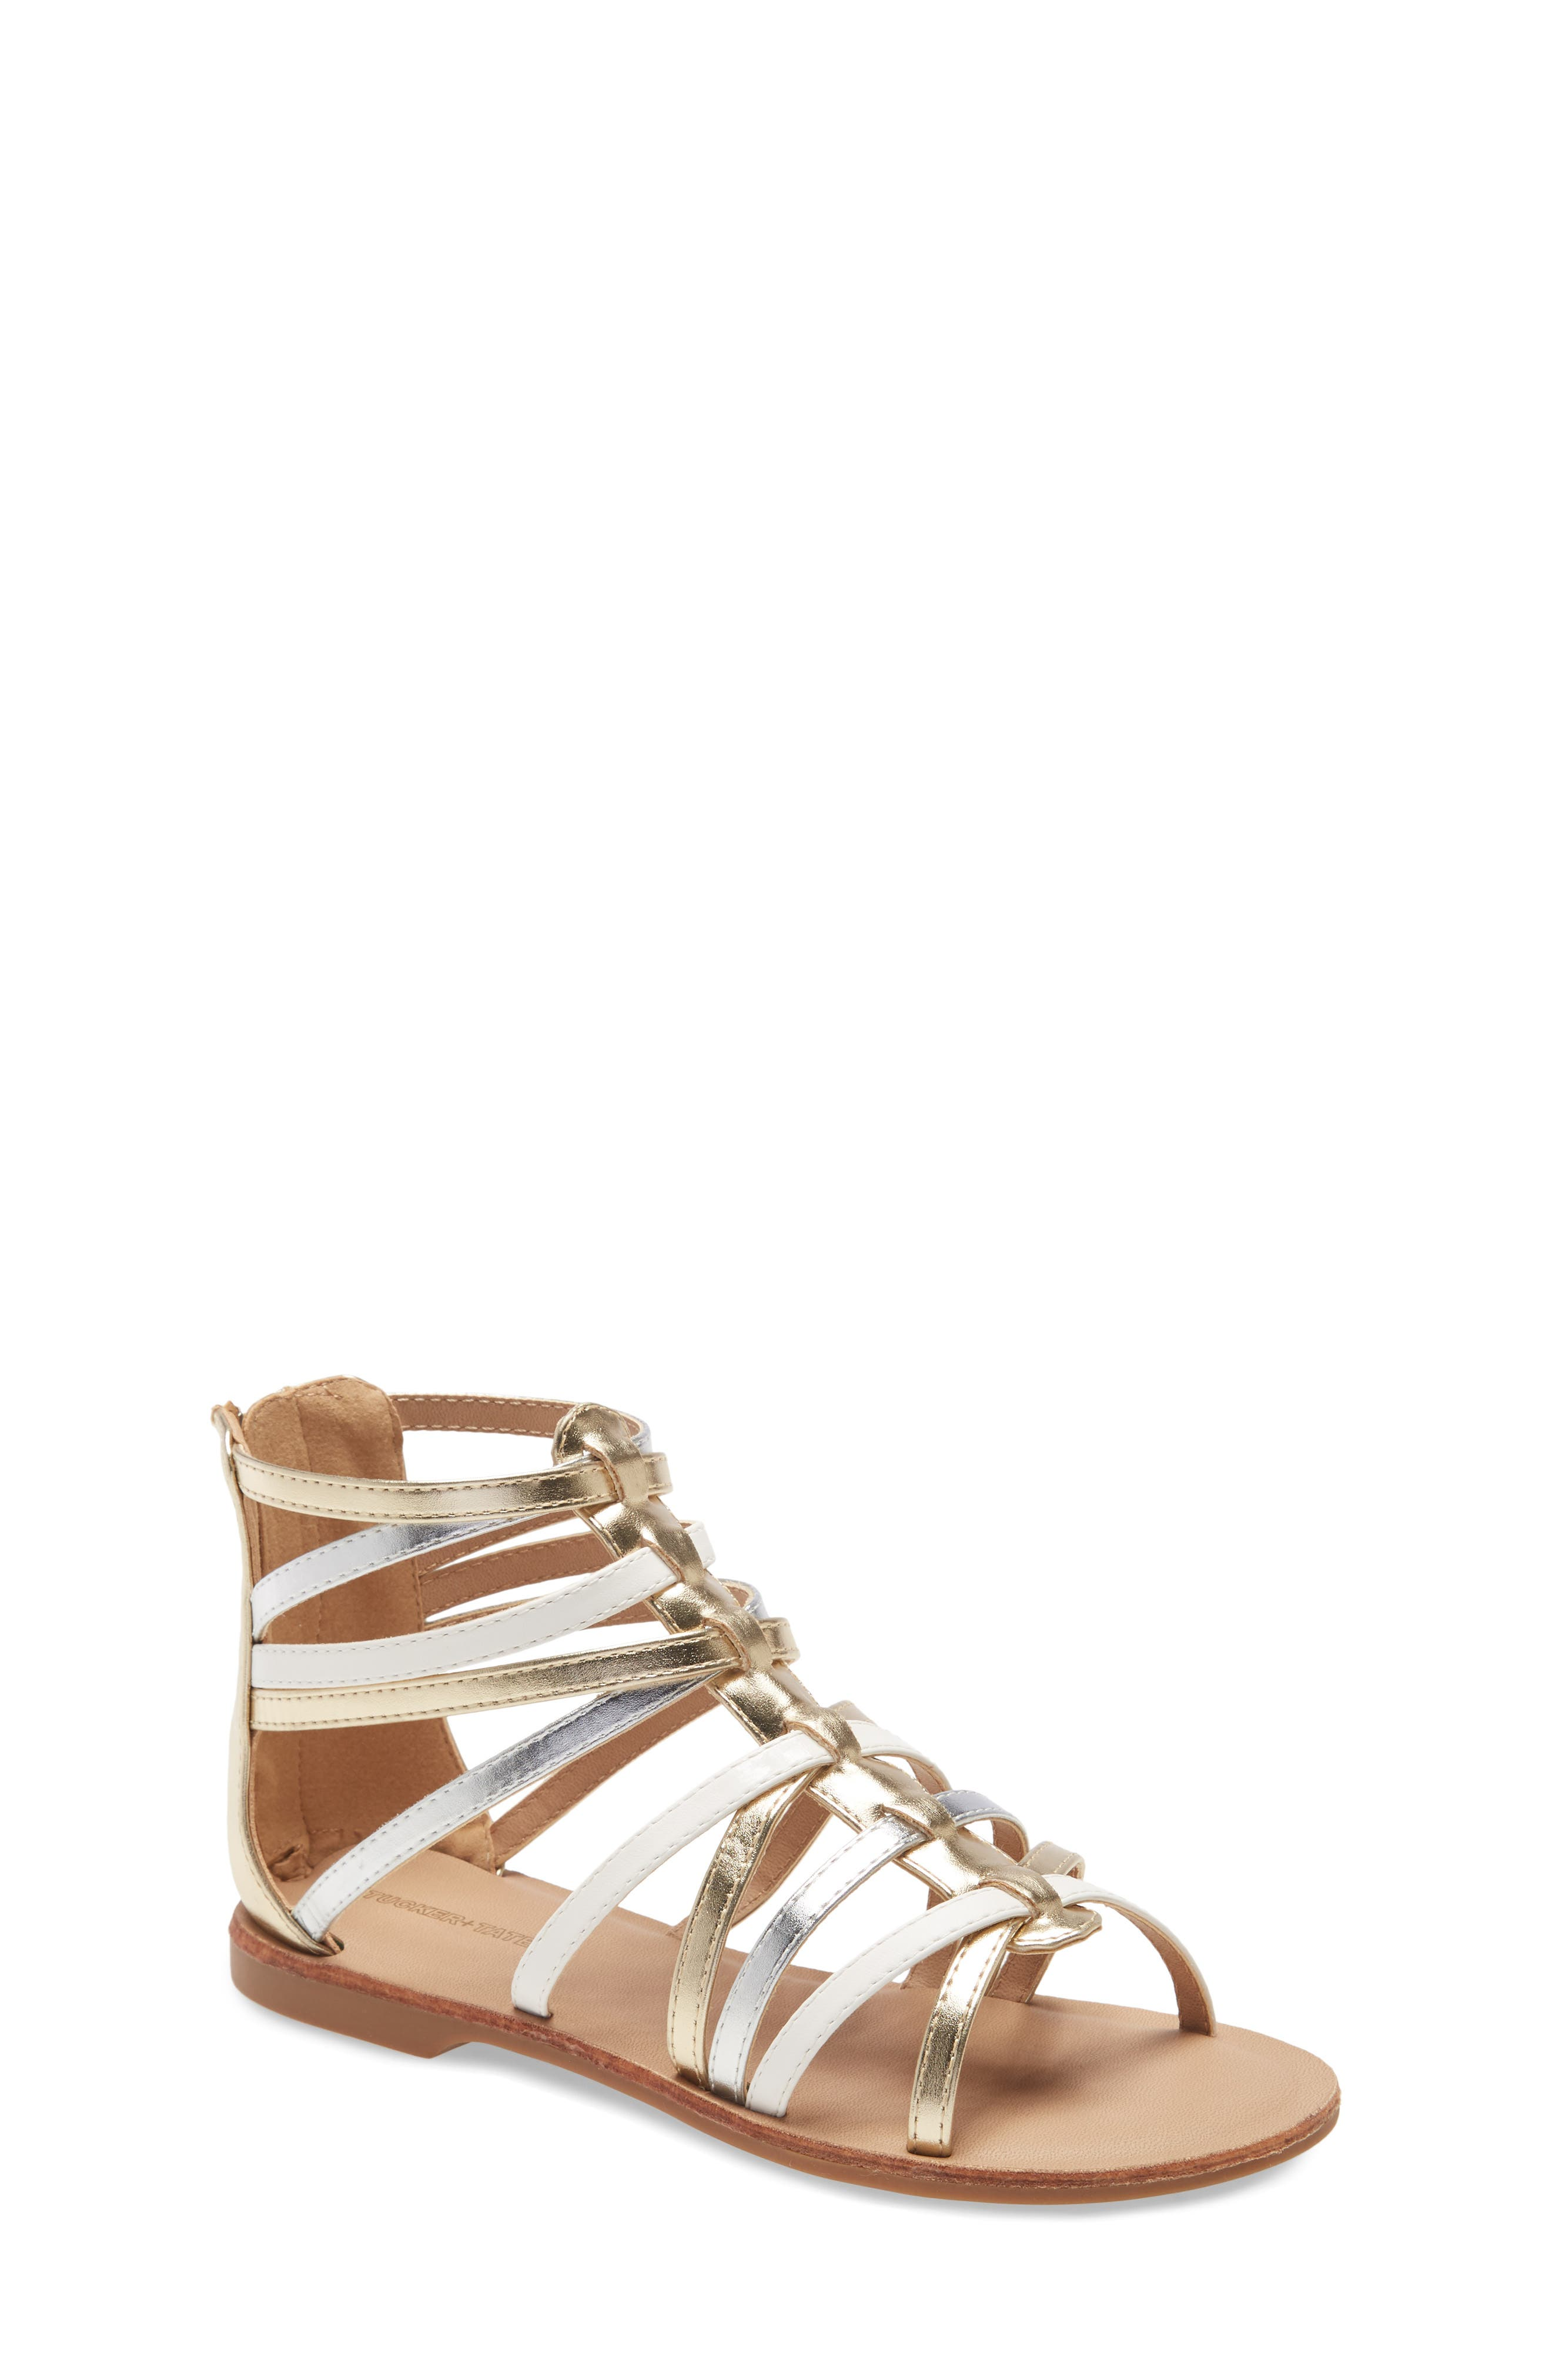 Shimmer and a mix of color enliven the look of a fun-or-fancy gladiator sandal styled with an easy-on back zipper. Style Name: Tucker + Tate Gladiator Sandal (Walker, Toddler, Little Kid & Big Kid). Style Number: 5941058. Available in stores.